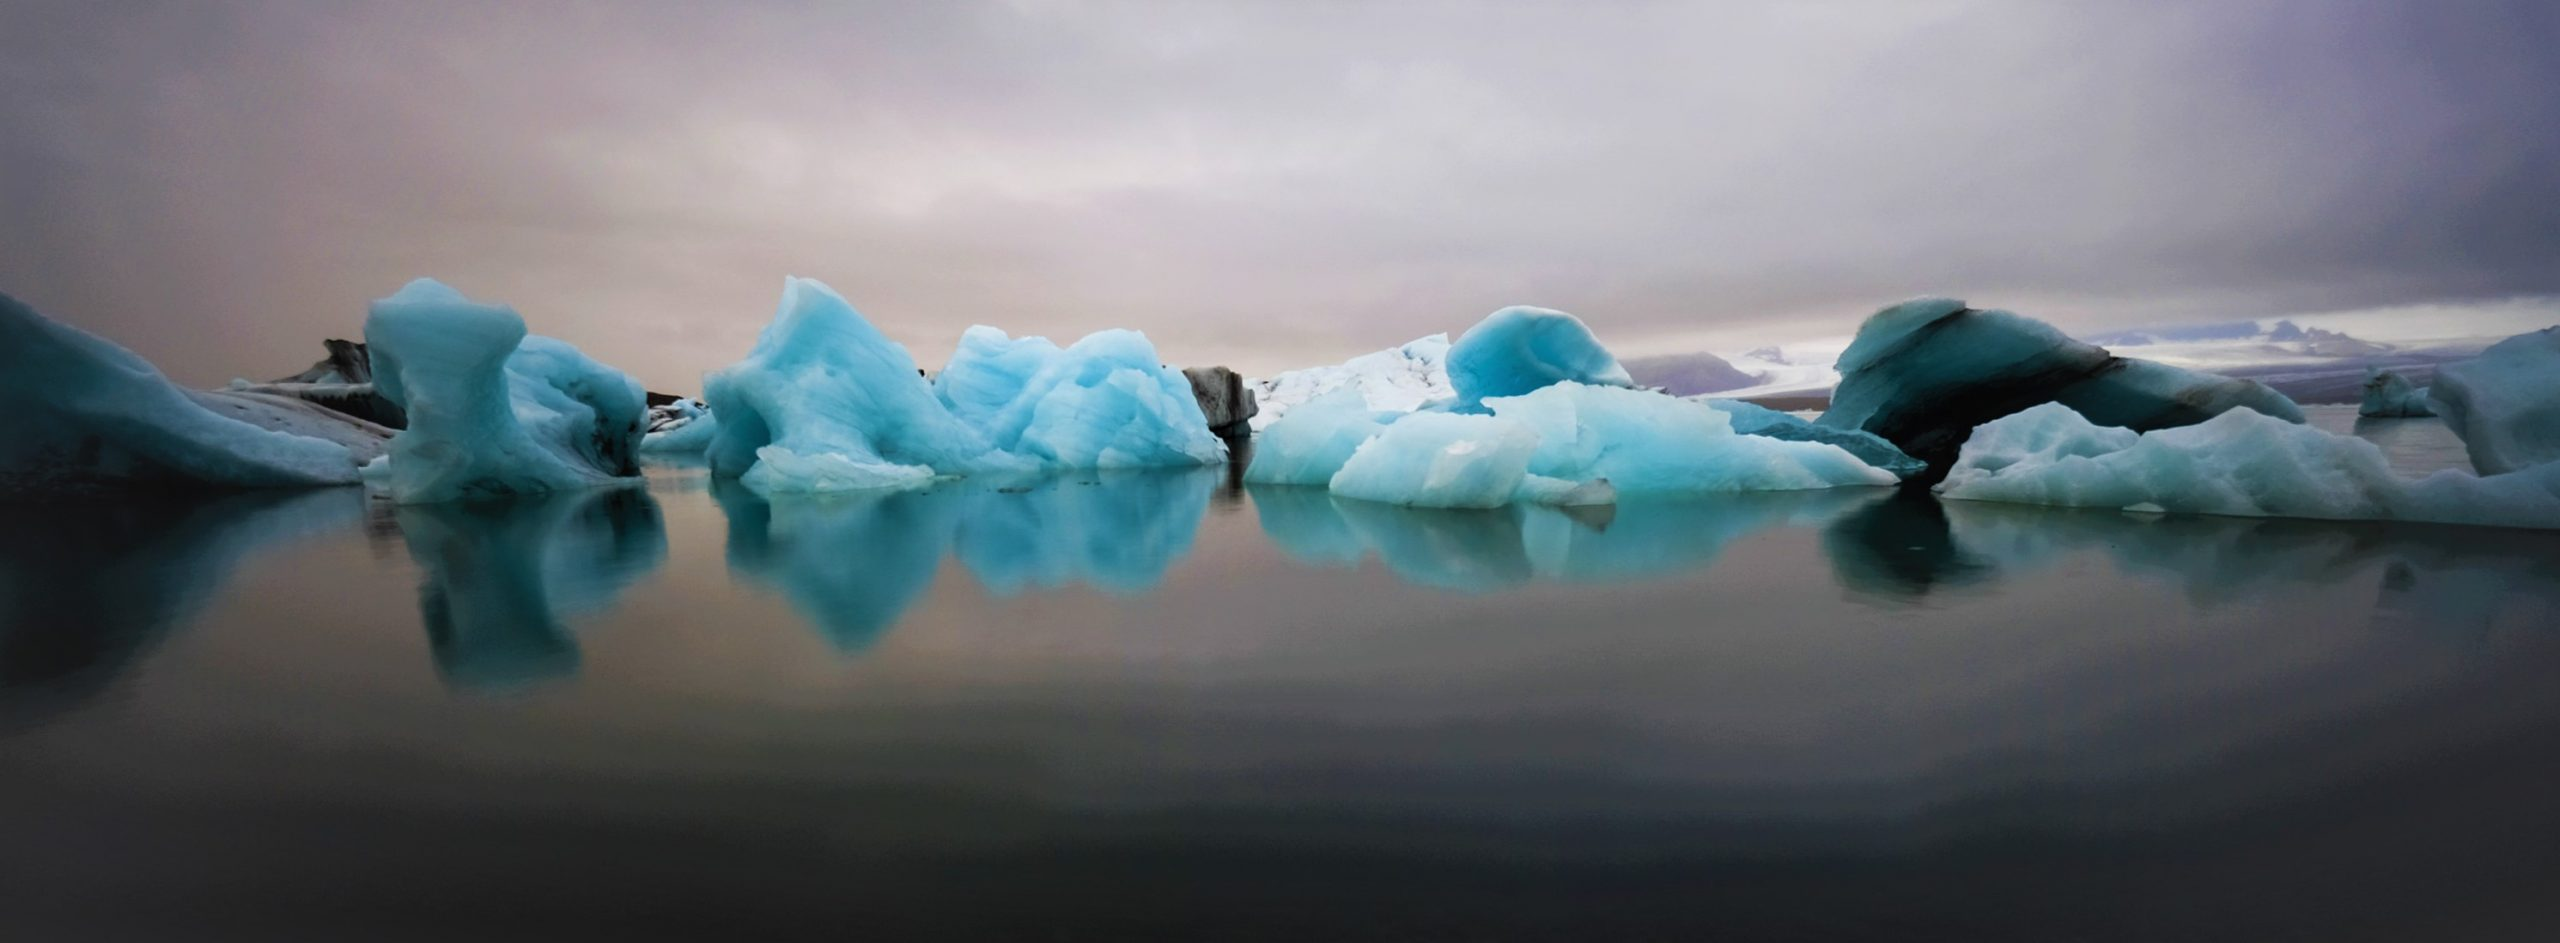 You are currently viewing My trip to Iceland #2